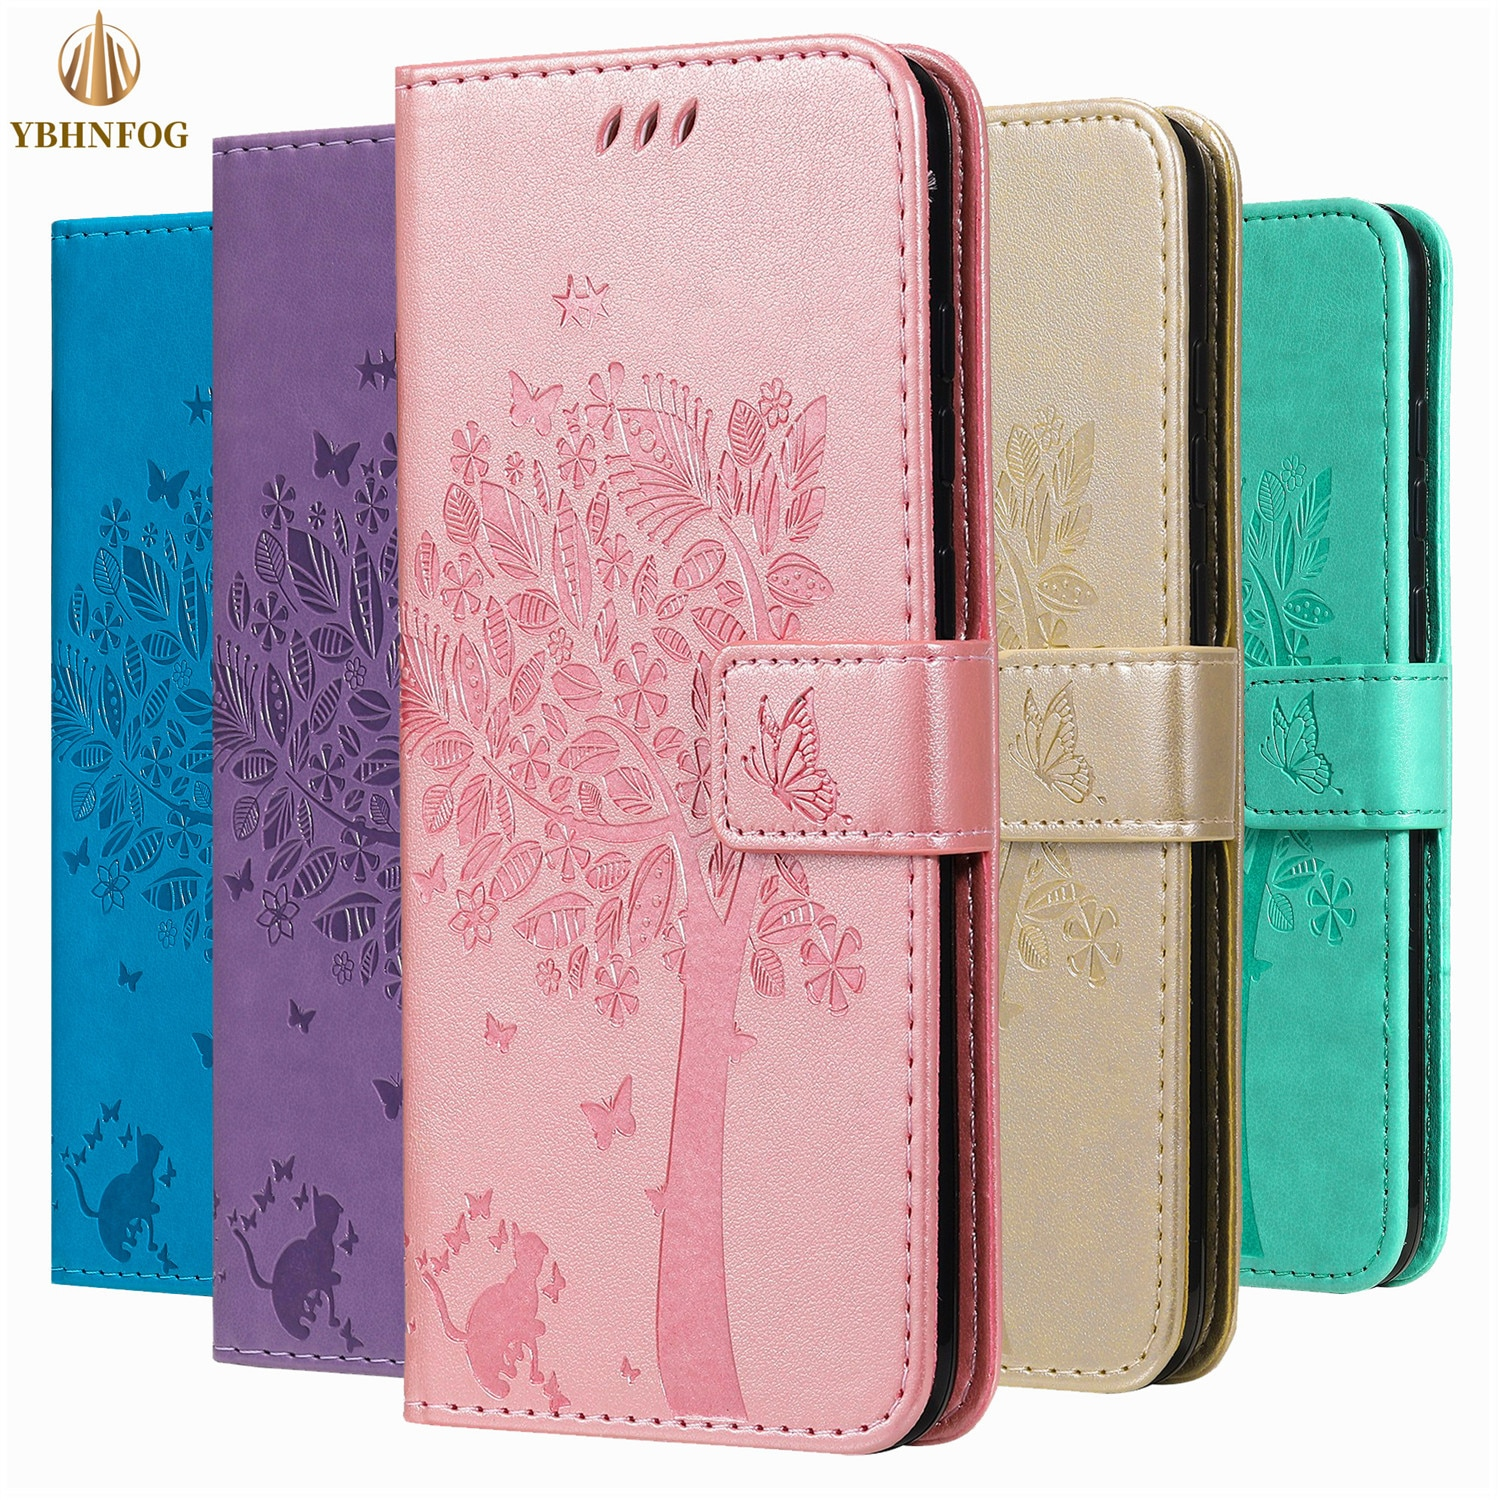 Flip Phone Case For Huawei P Smart 2019 Mate 7 8 9 10 20 Lite Mate 30 Pro Leather Holder Card Slot S